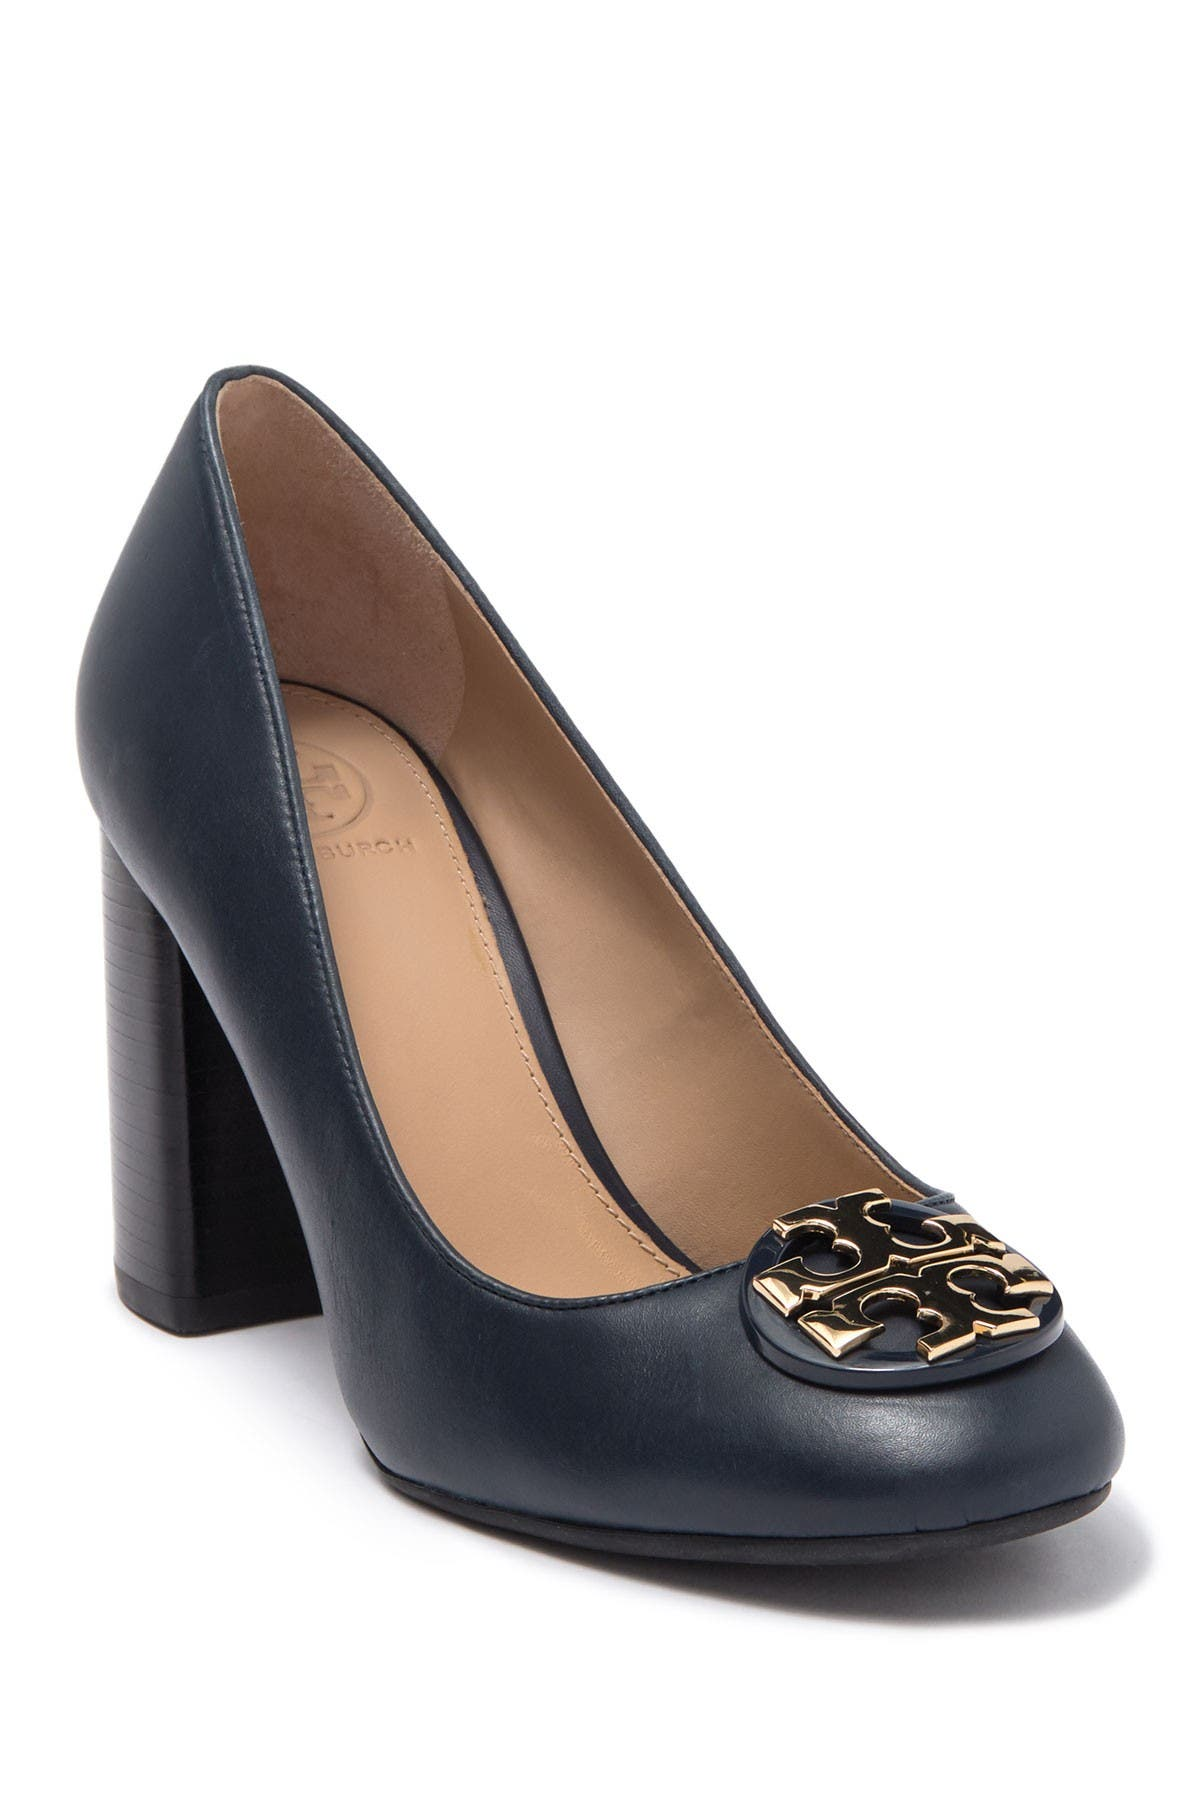 Tory Burch | Janey Leather Pump